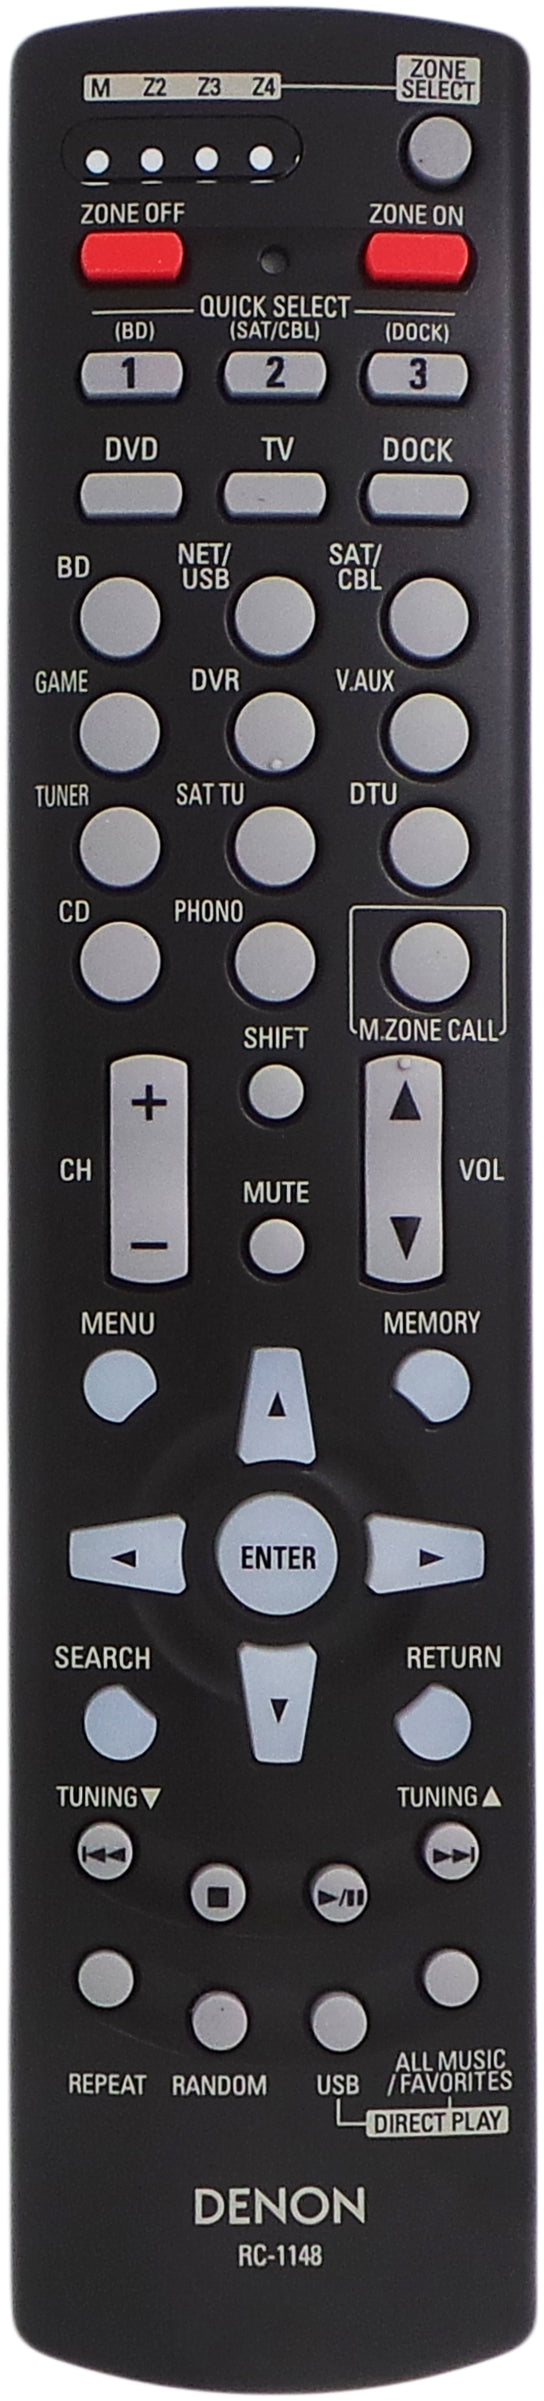 ORIGINAL DENON Remote Control RC-1148 - AVR-3311 AVR-4311 RECEIVER - Remote Control Warehouse